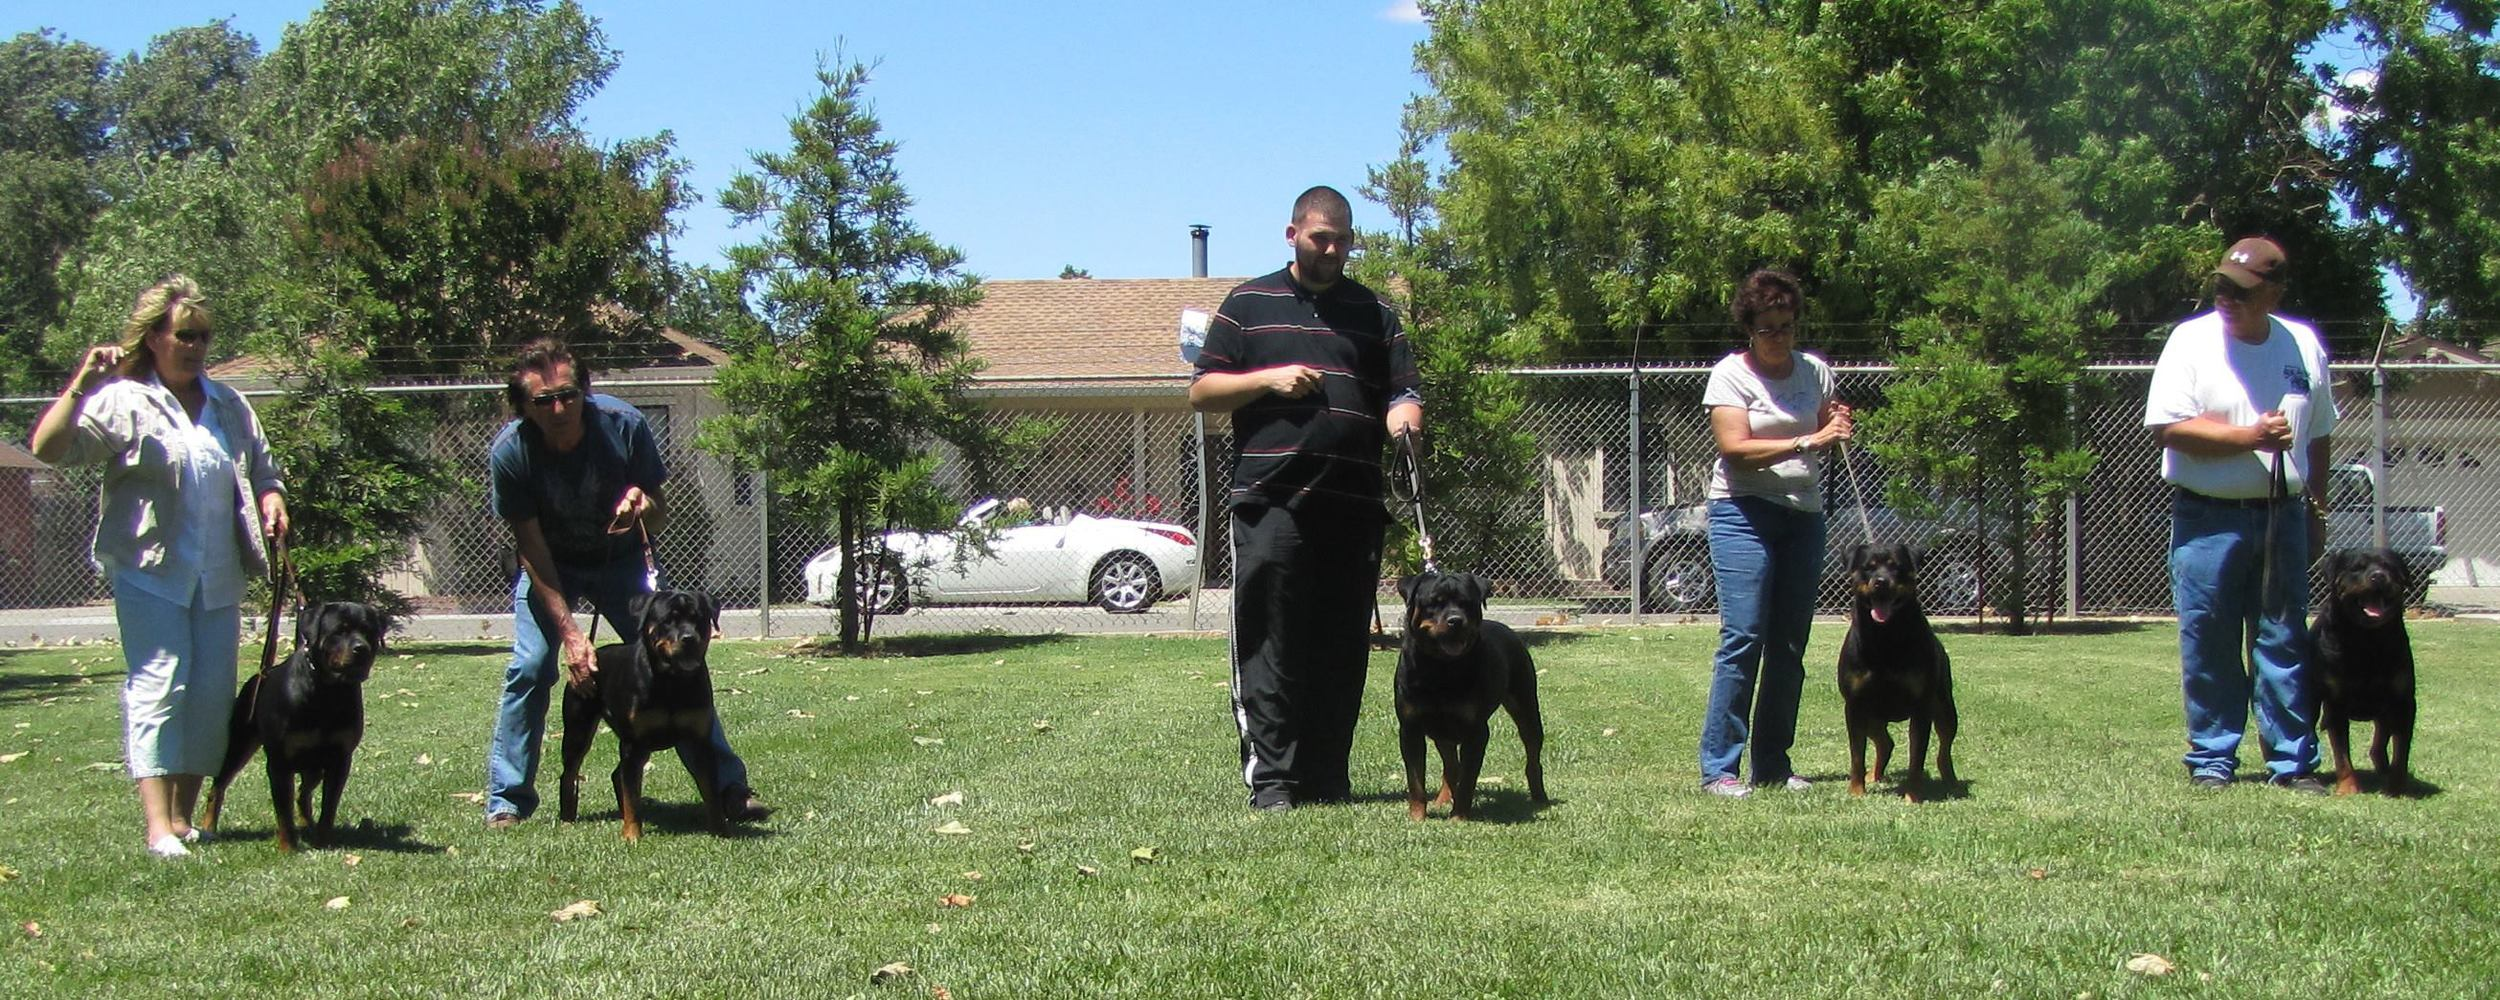 """Jasko (far right) and his offspring. Jasko, as well as this image, is owned by James and Susan Marrone of Haustier Rottweilers. Jasko is the only non-American born, but this line-up shows us what people typically associate with """"German"""" or """"Import"""" Rottweilers!"""